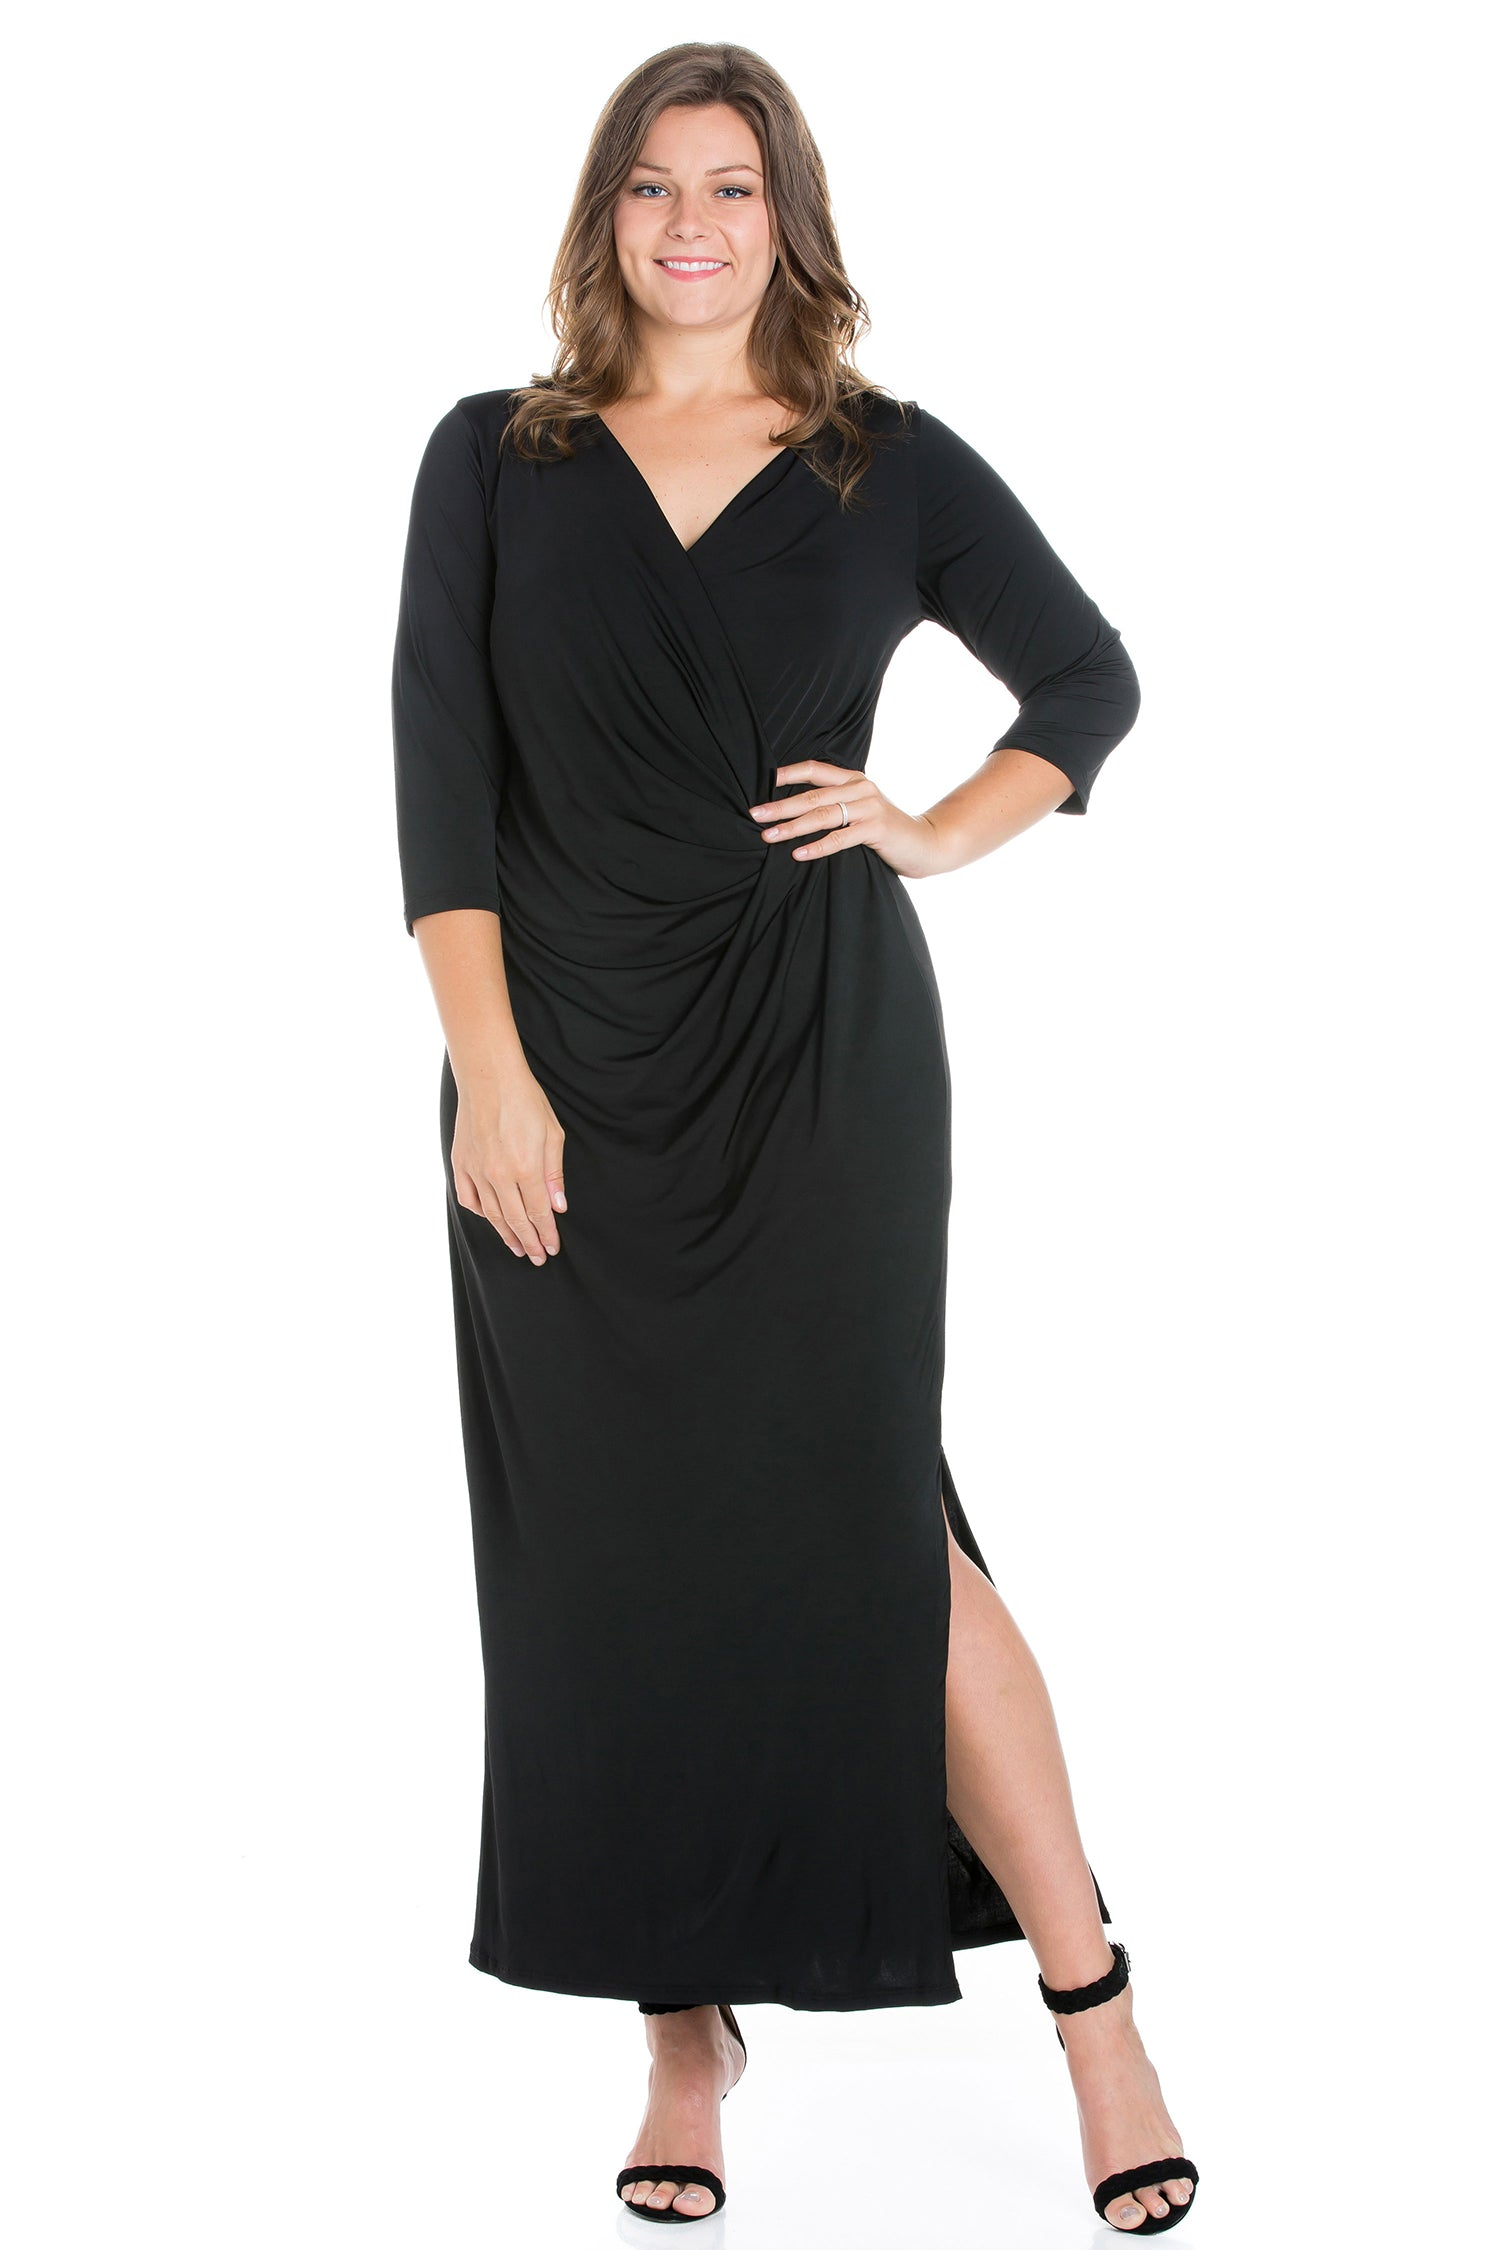 24seven Comfort Appare Fitted V-Neck Side Slit Plus Size Maxi Dress-DRESSES-24Seven Comfort Apparel-BLACK-1X-24/7 Comfort Apparel